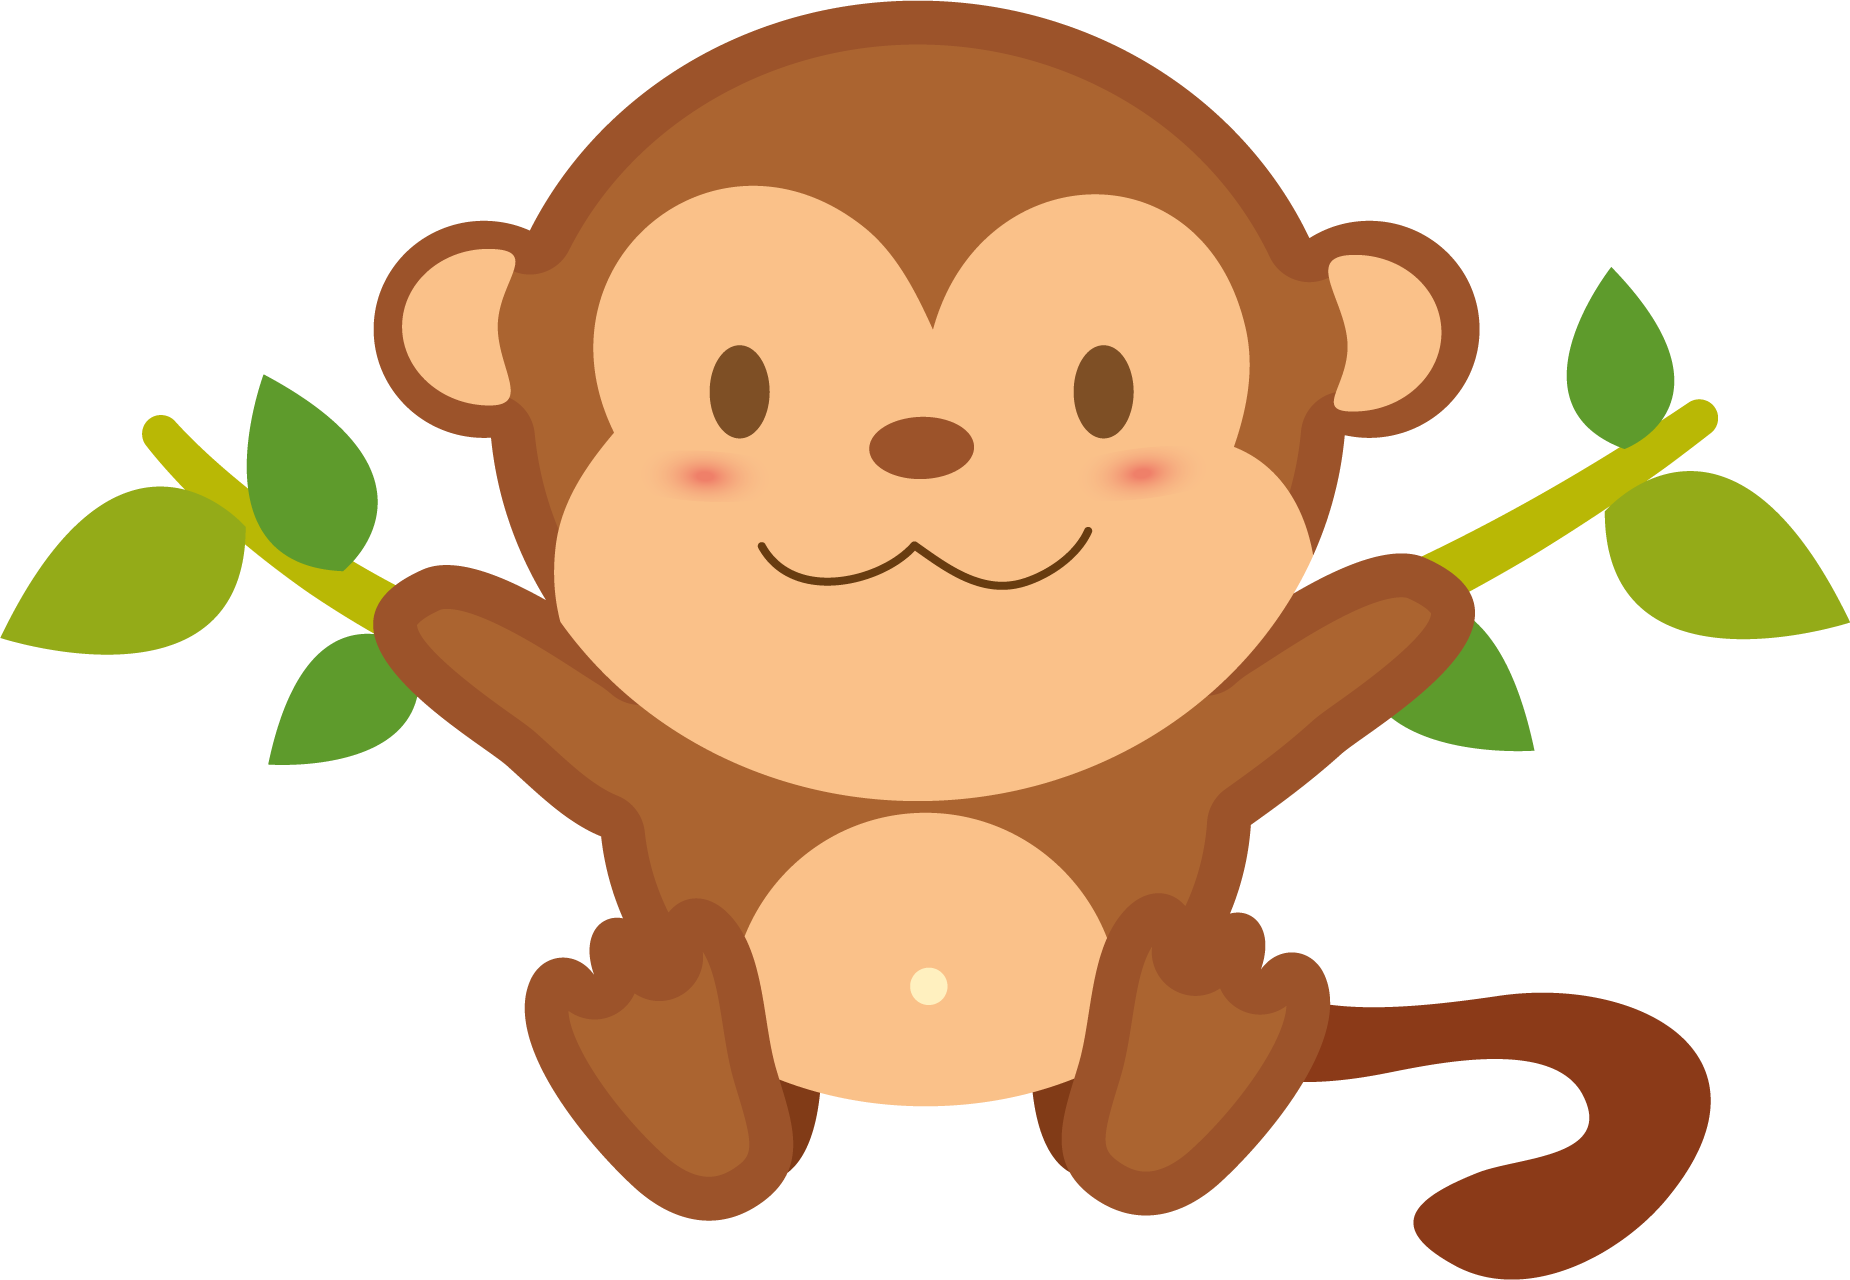 1850 clipart picture free library Monkey Clip art - monkey png download - 1850*1280 - Free Transparent ... picture free library